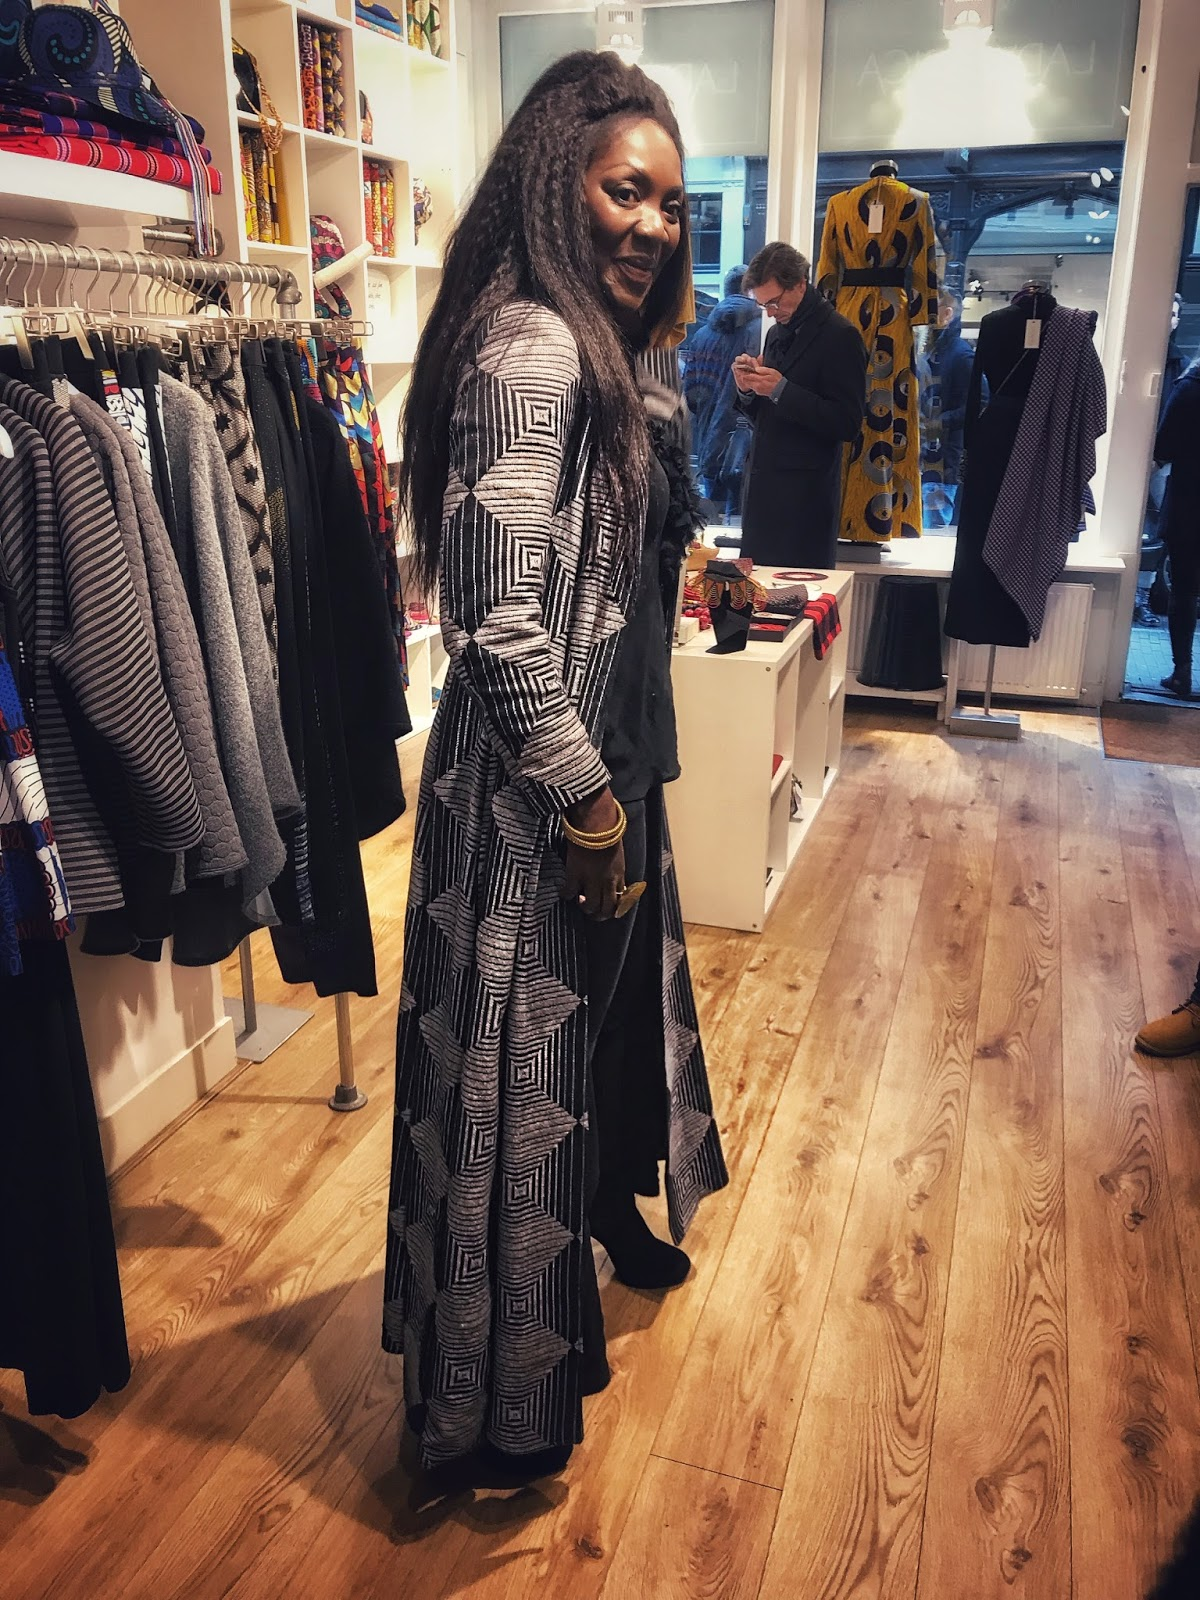 Store Owner Irene Lady Africa The Hague Netherlands